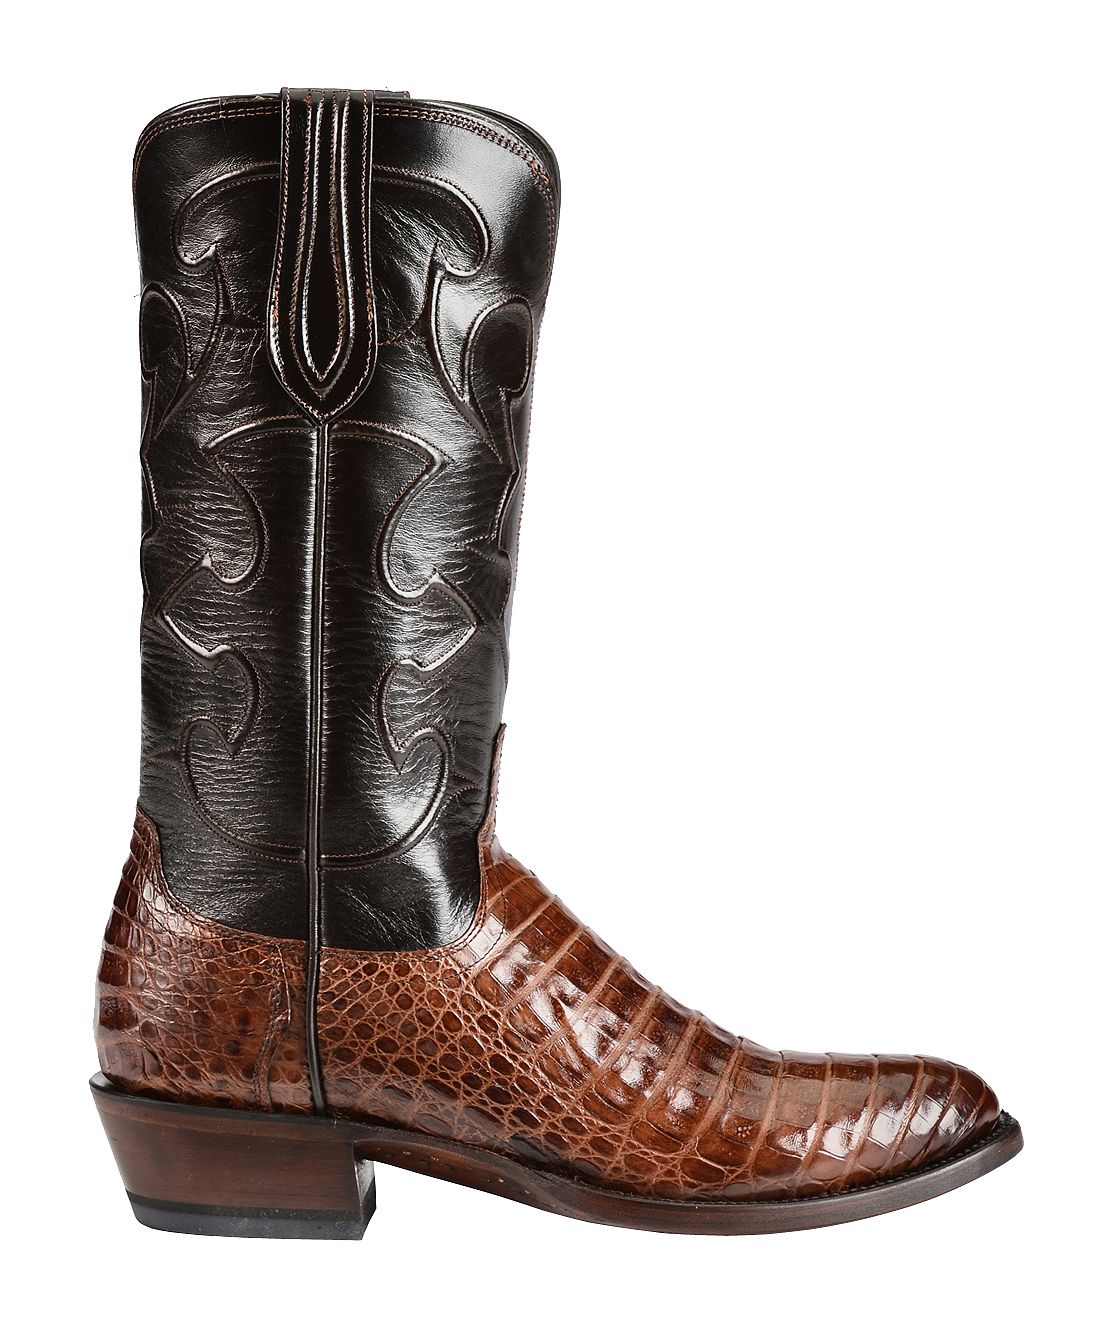 Lucchese Handcrafted 1883 Caiman Belly Cowboy Boots ...